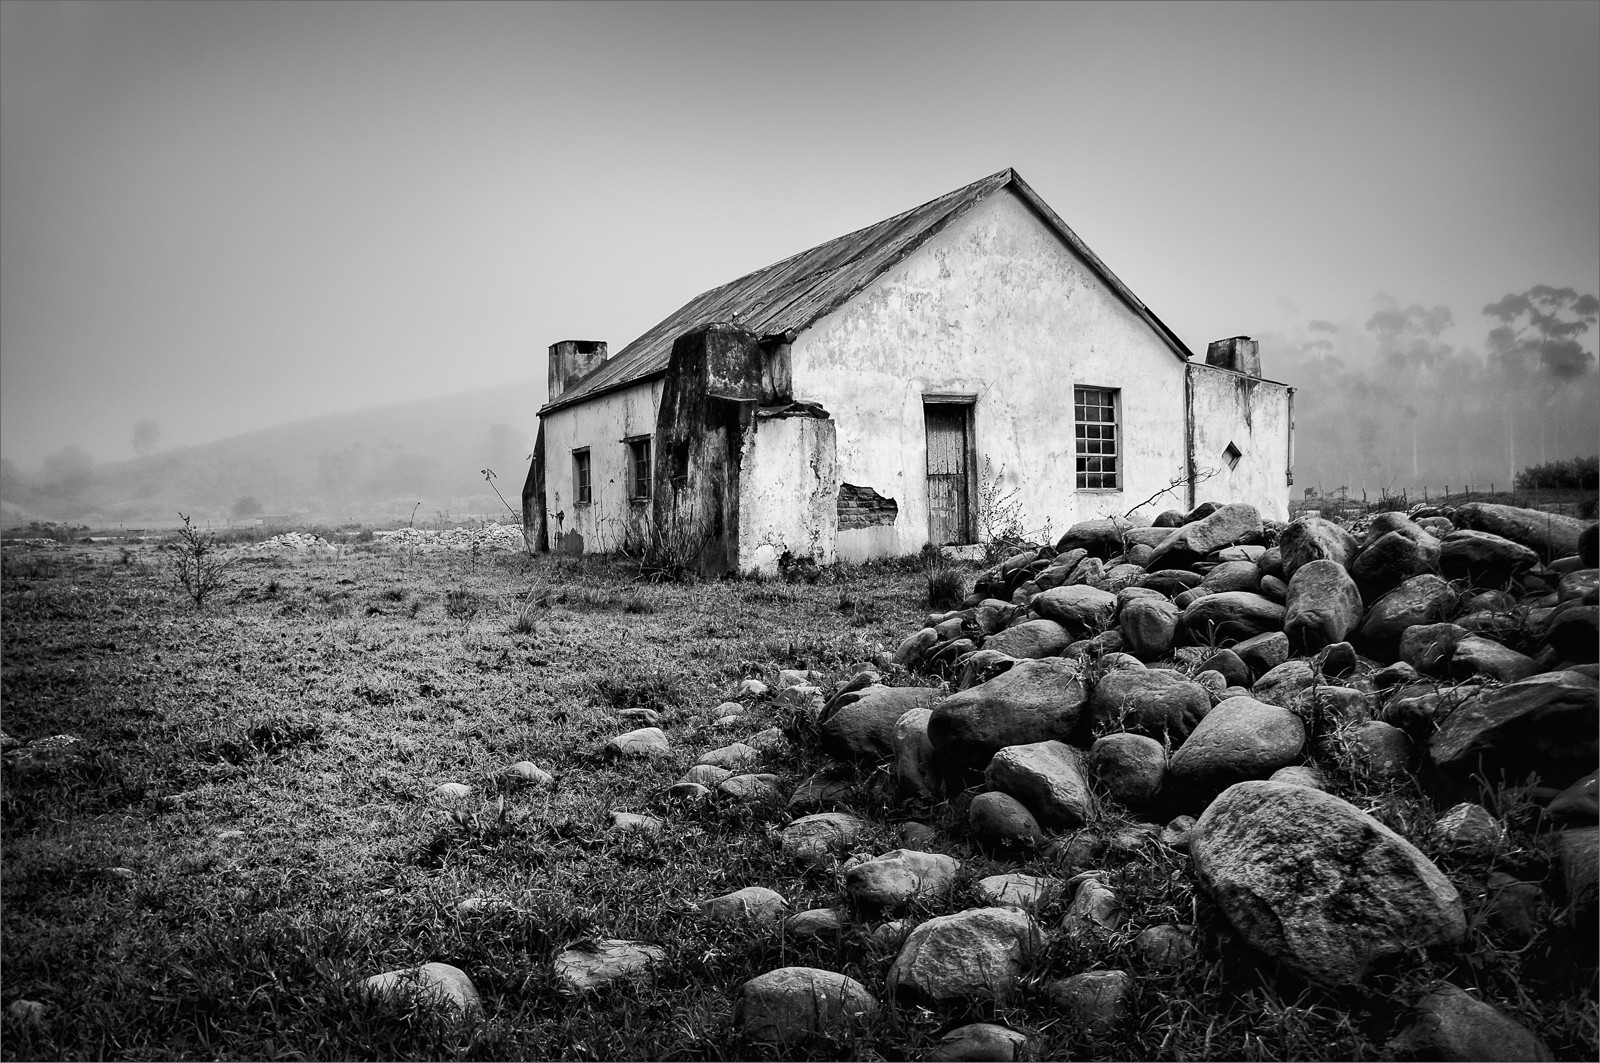 MONO - Forgotten_Home by Dave_Mullin (12 marks)